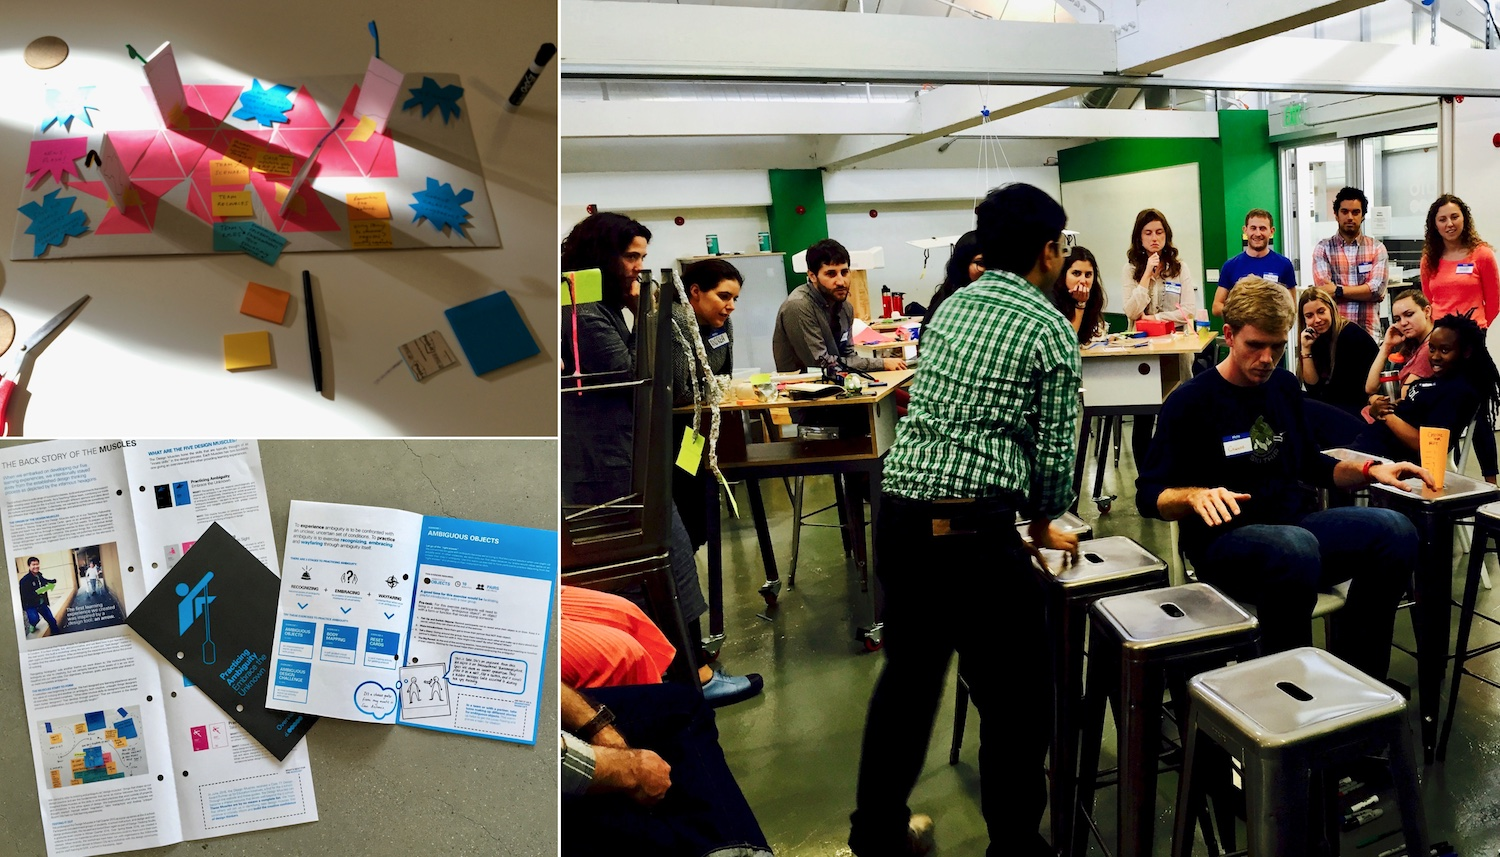 Clockwise from top left: Prototyping Practicing Negotiation, students rapid prototyping, media for Practicing Ambiguity.